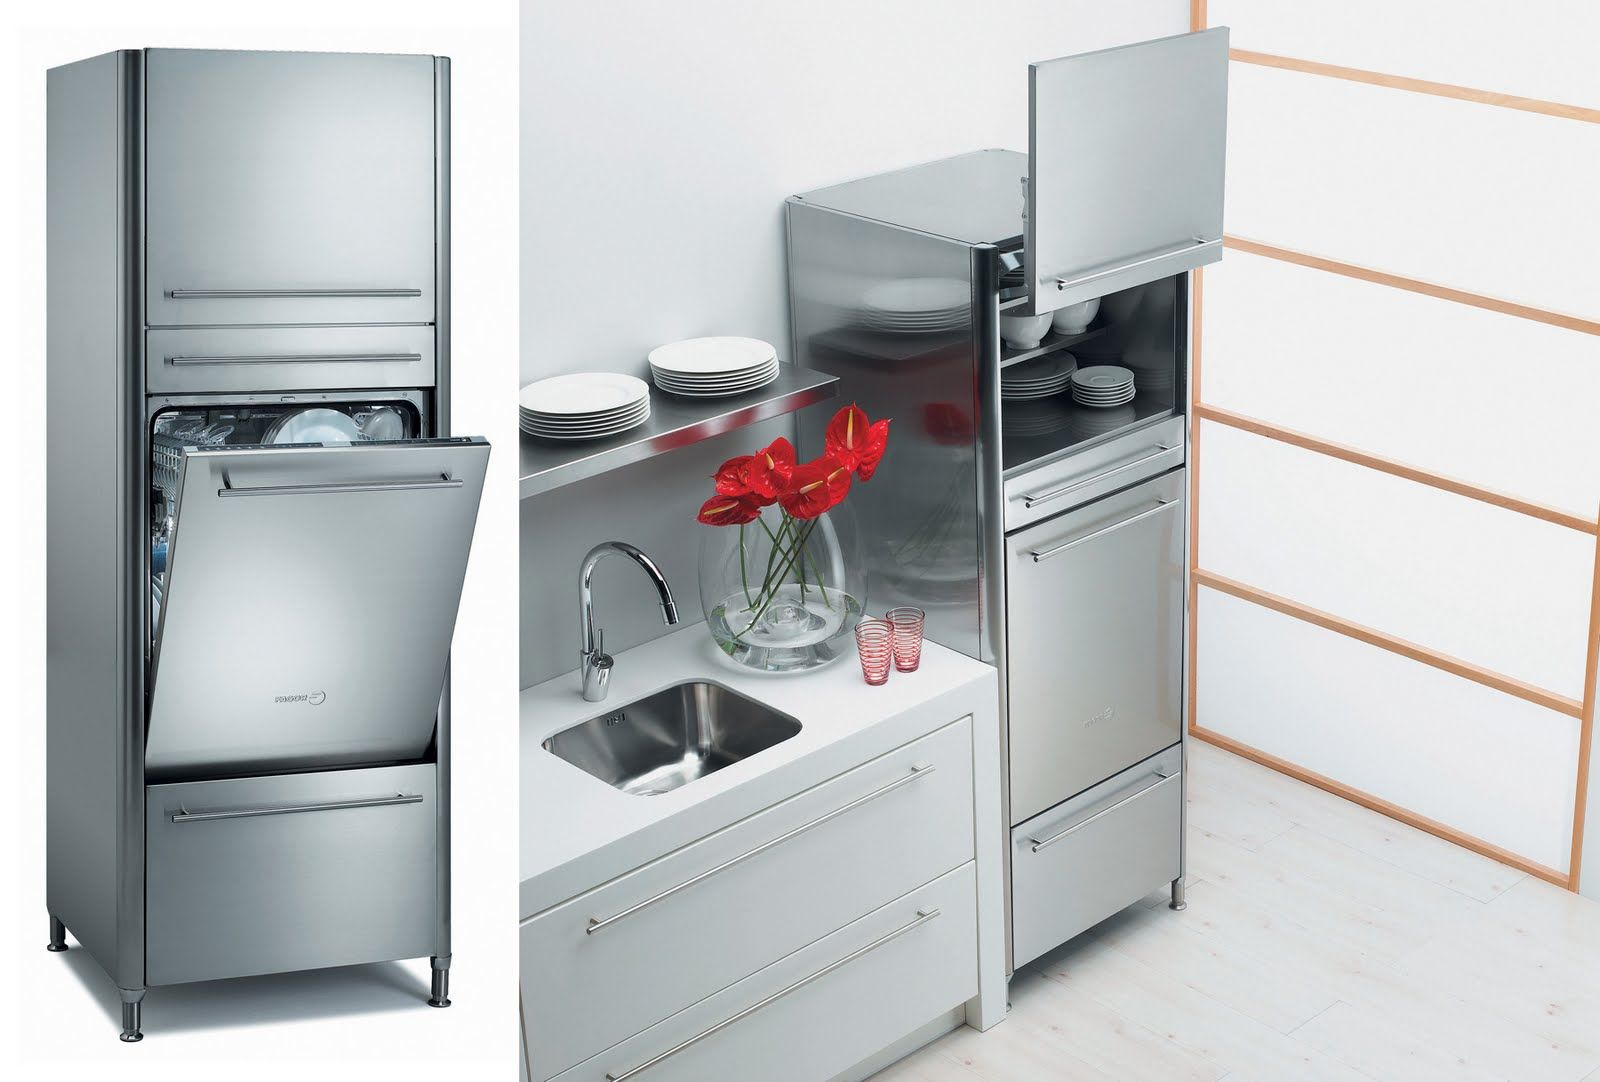 Small Stove Oven | Compact kitchen appliances, Small ...